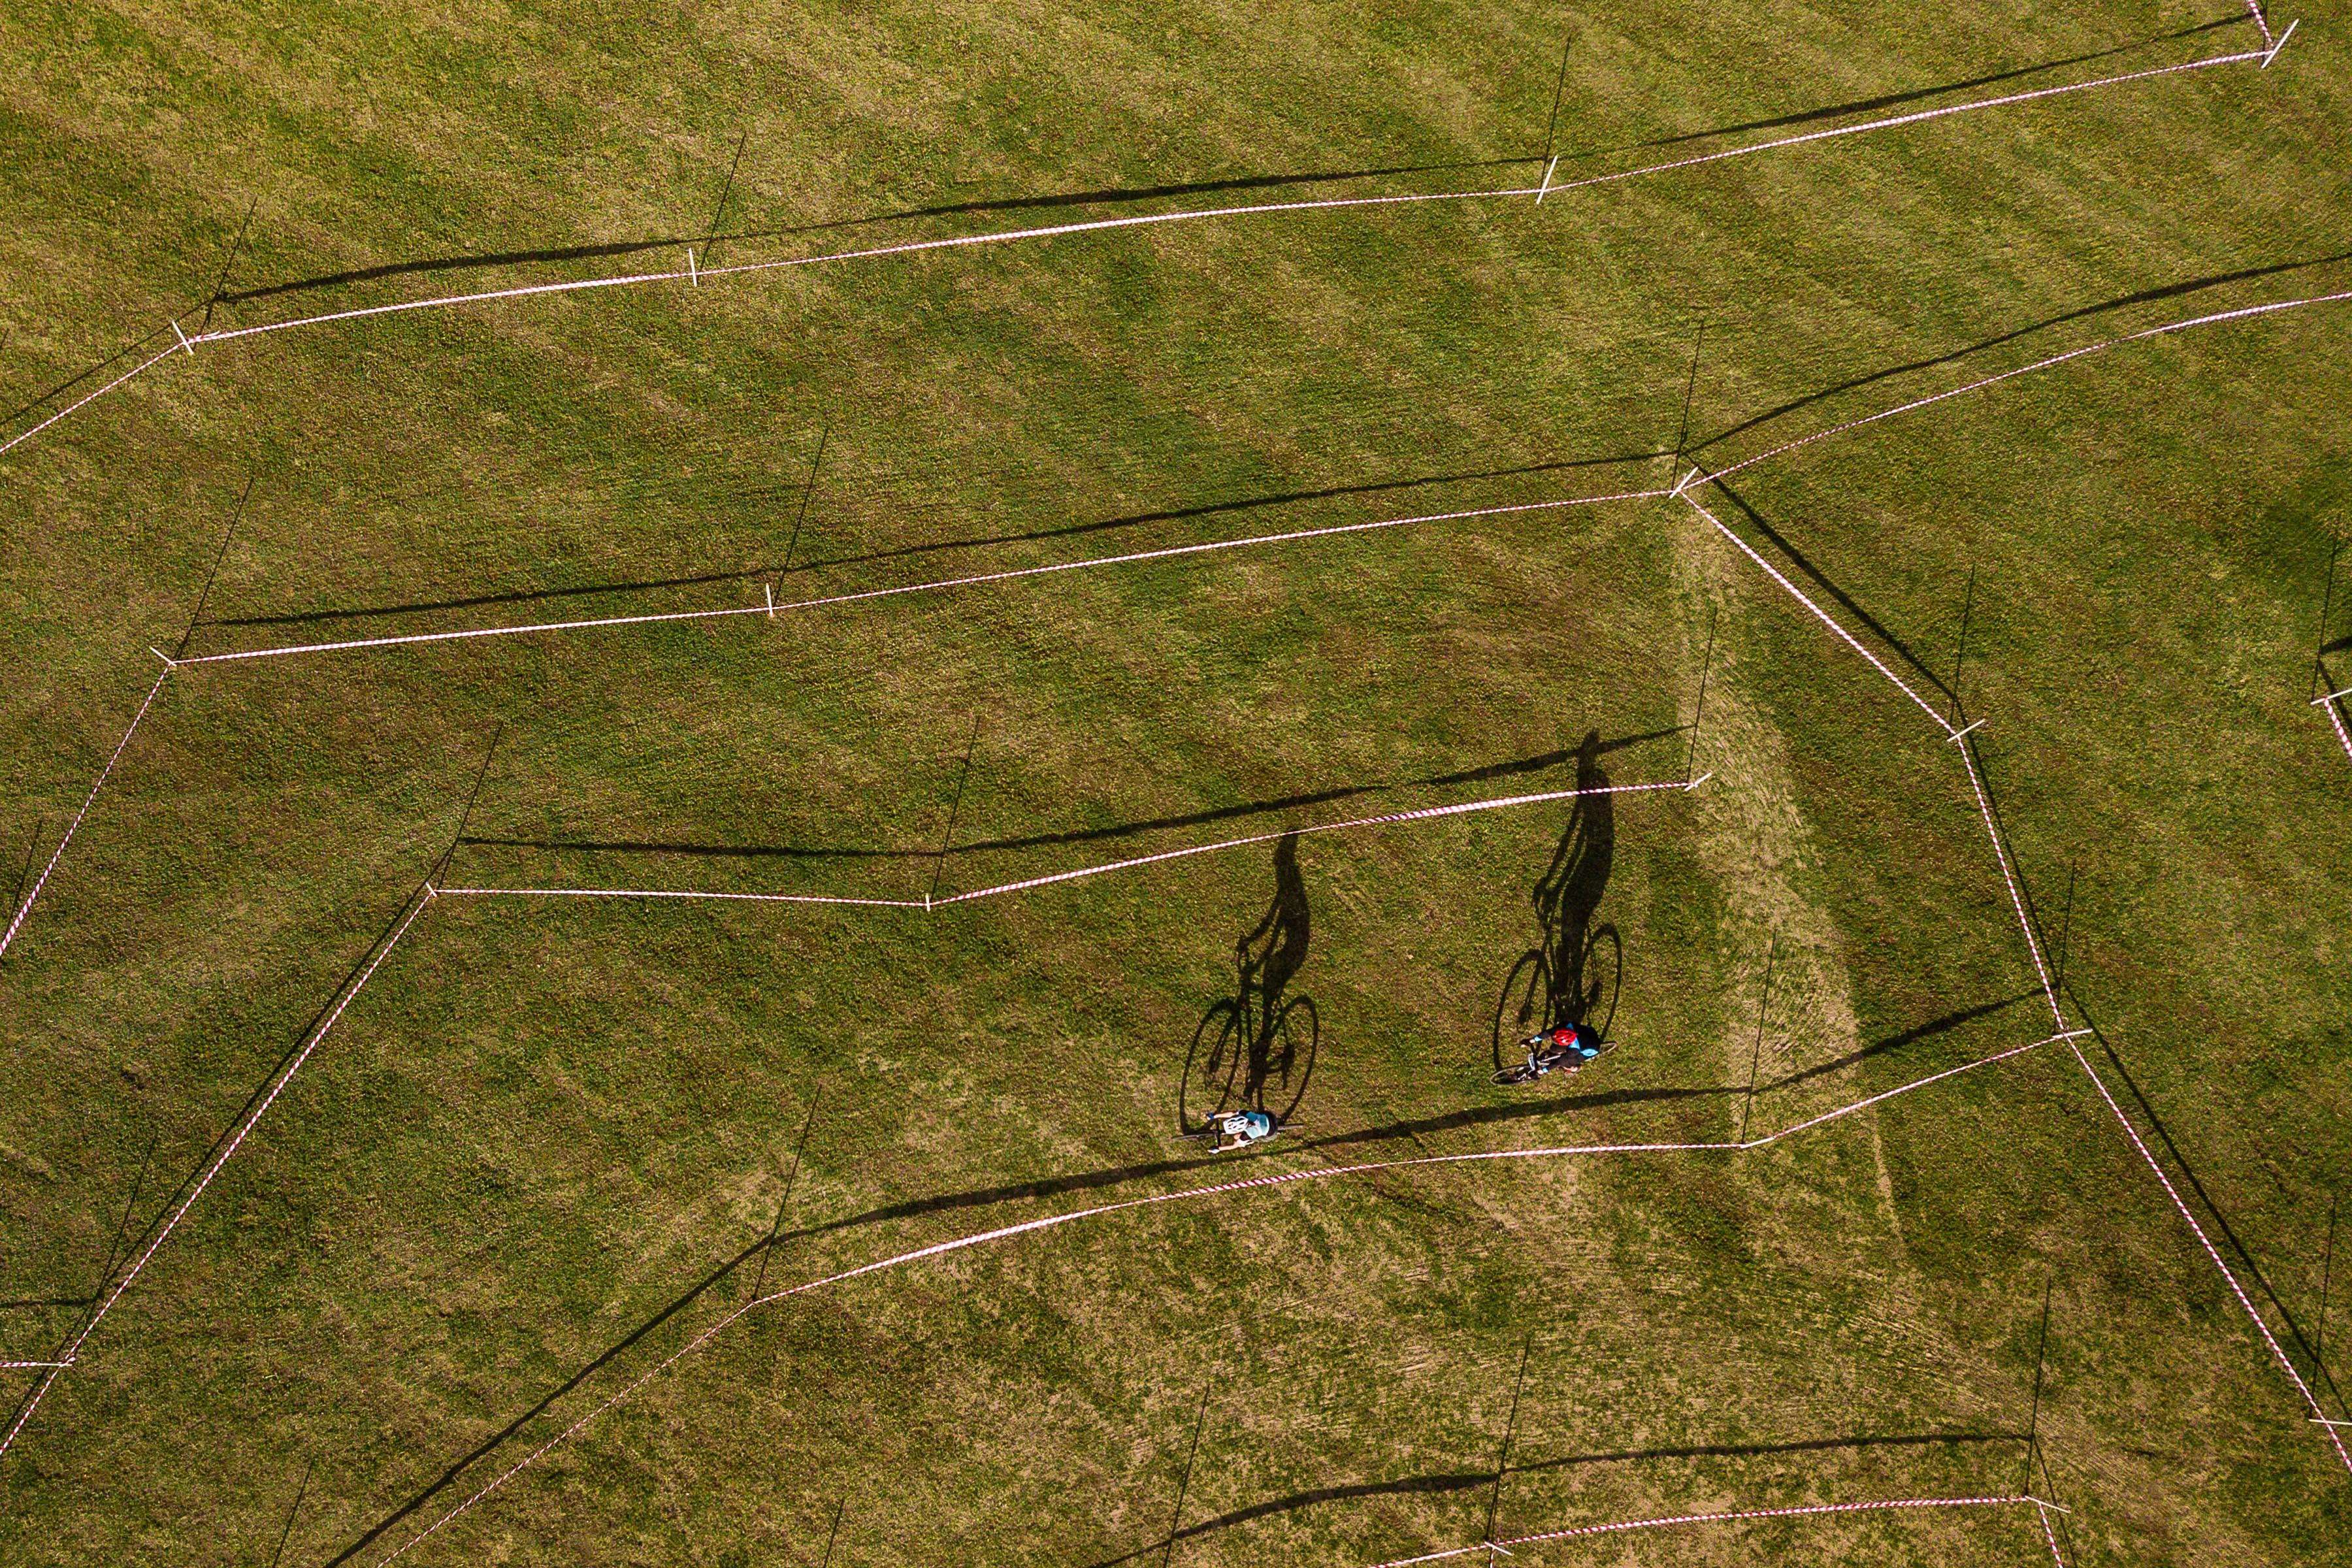 BH19-DTP-D1-Cyclocross-Aerial-5